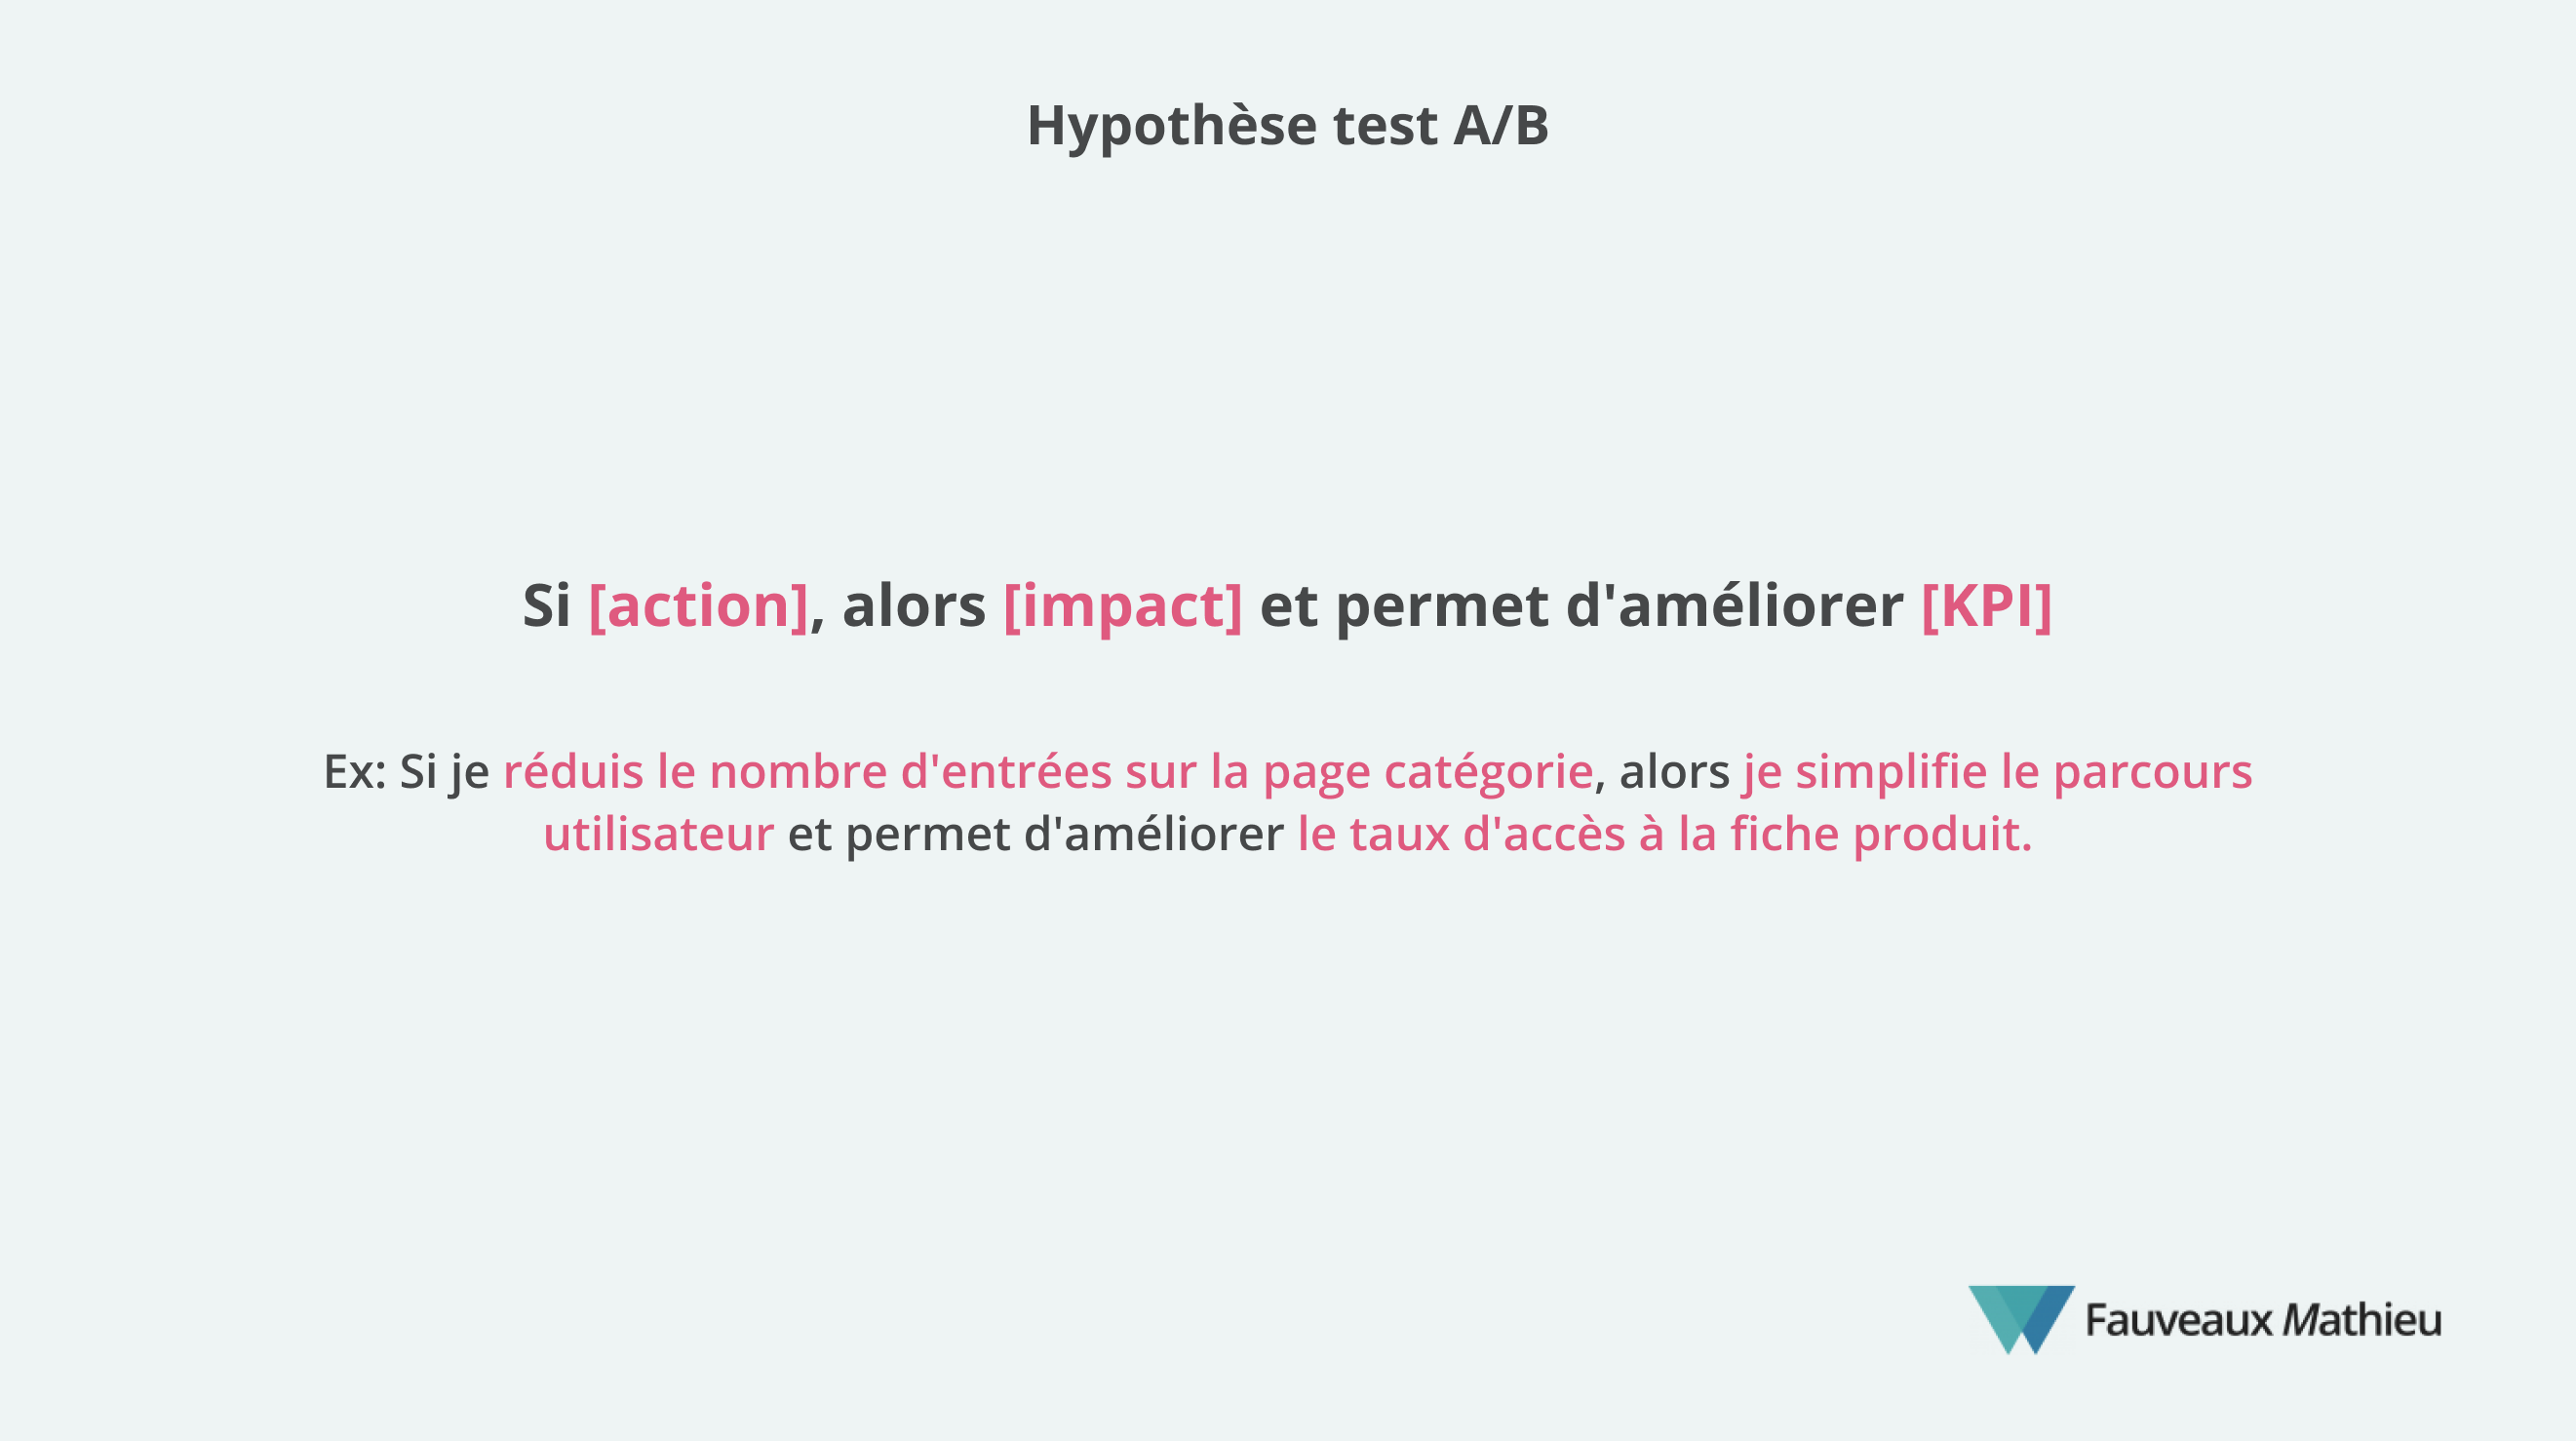 formule hypothese test ab consultant cro freelance